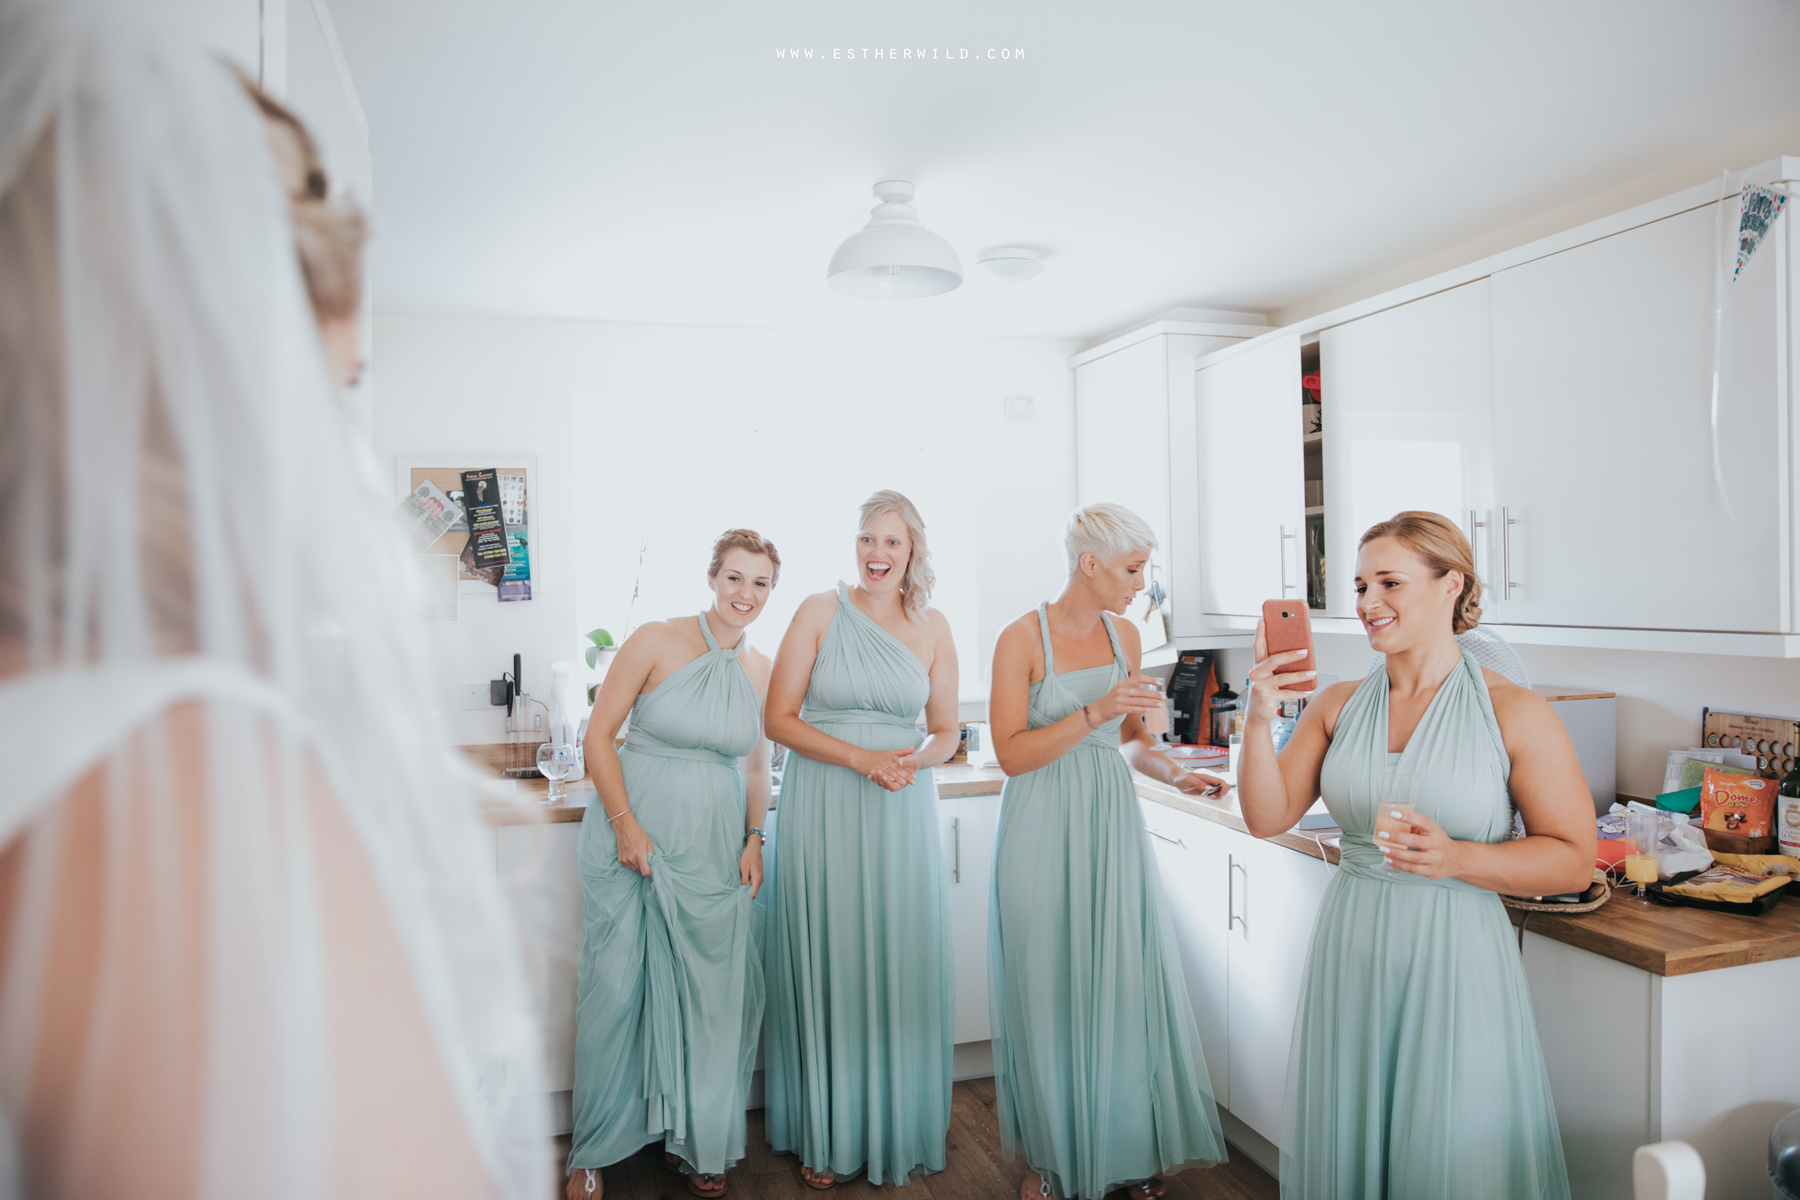 Swaffham_Wedding_Castle_Acre_Norfolk_Esther_Wild_Photographer_Wedding_Photography_3R8A0319.jpg